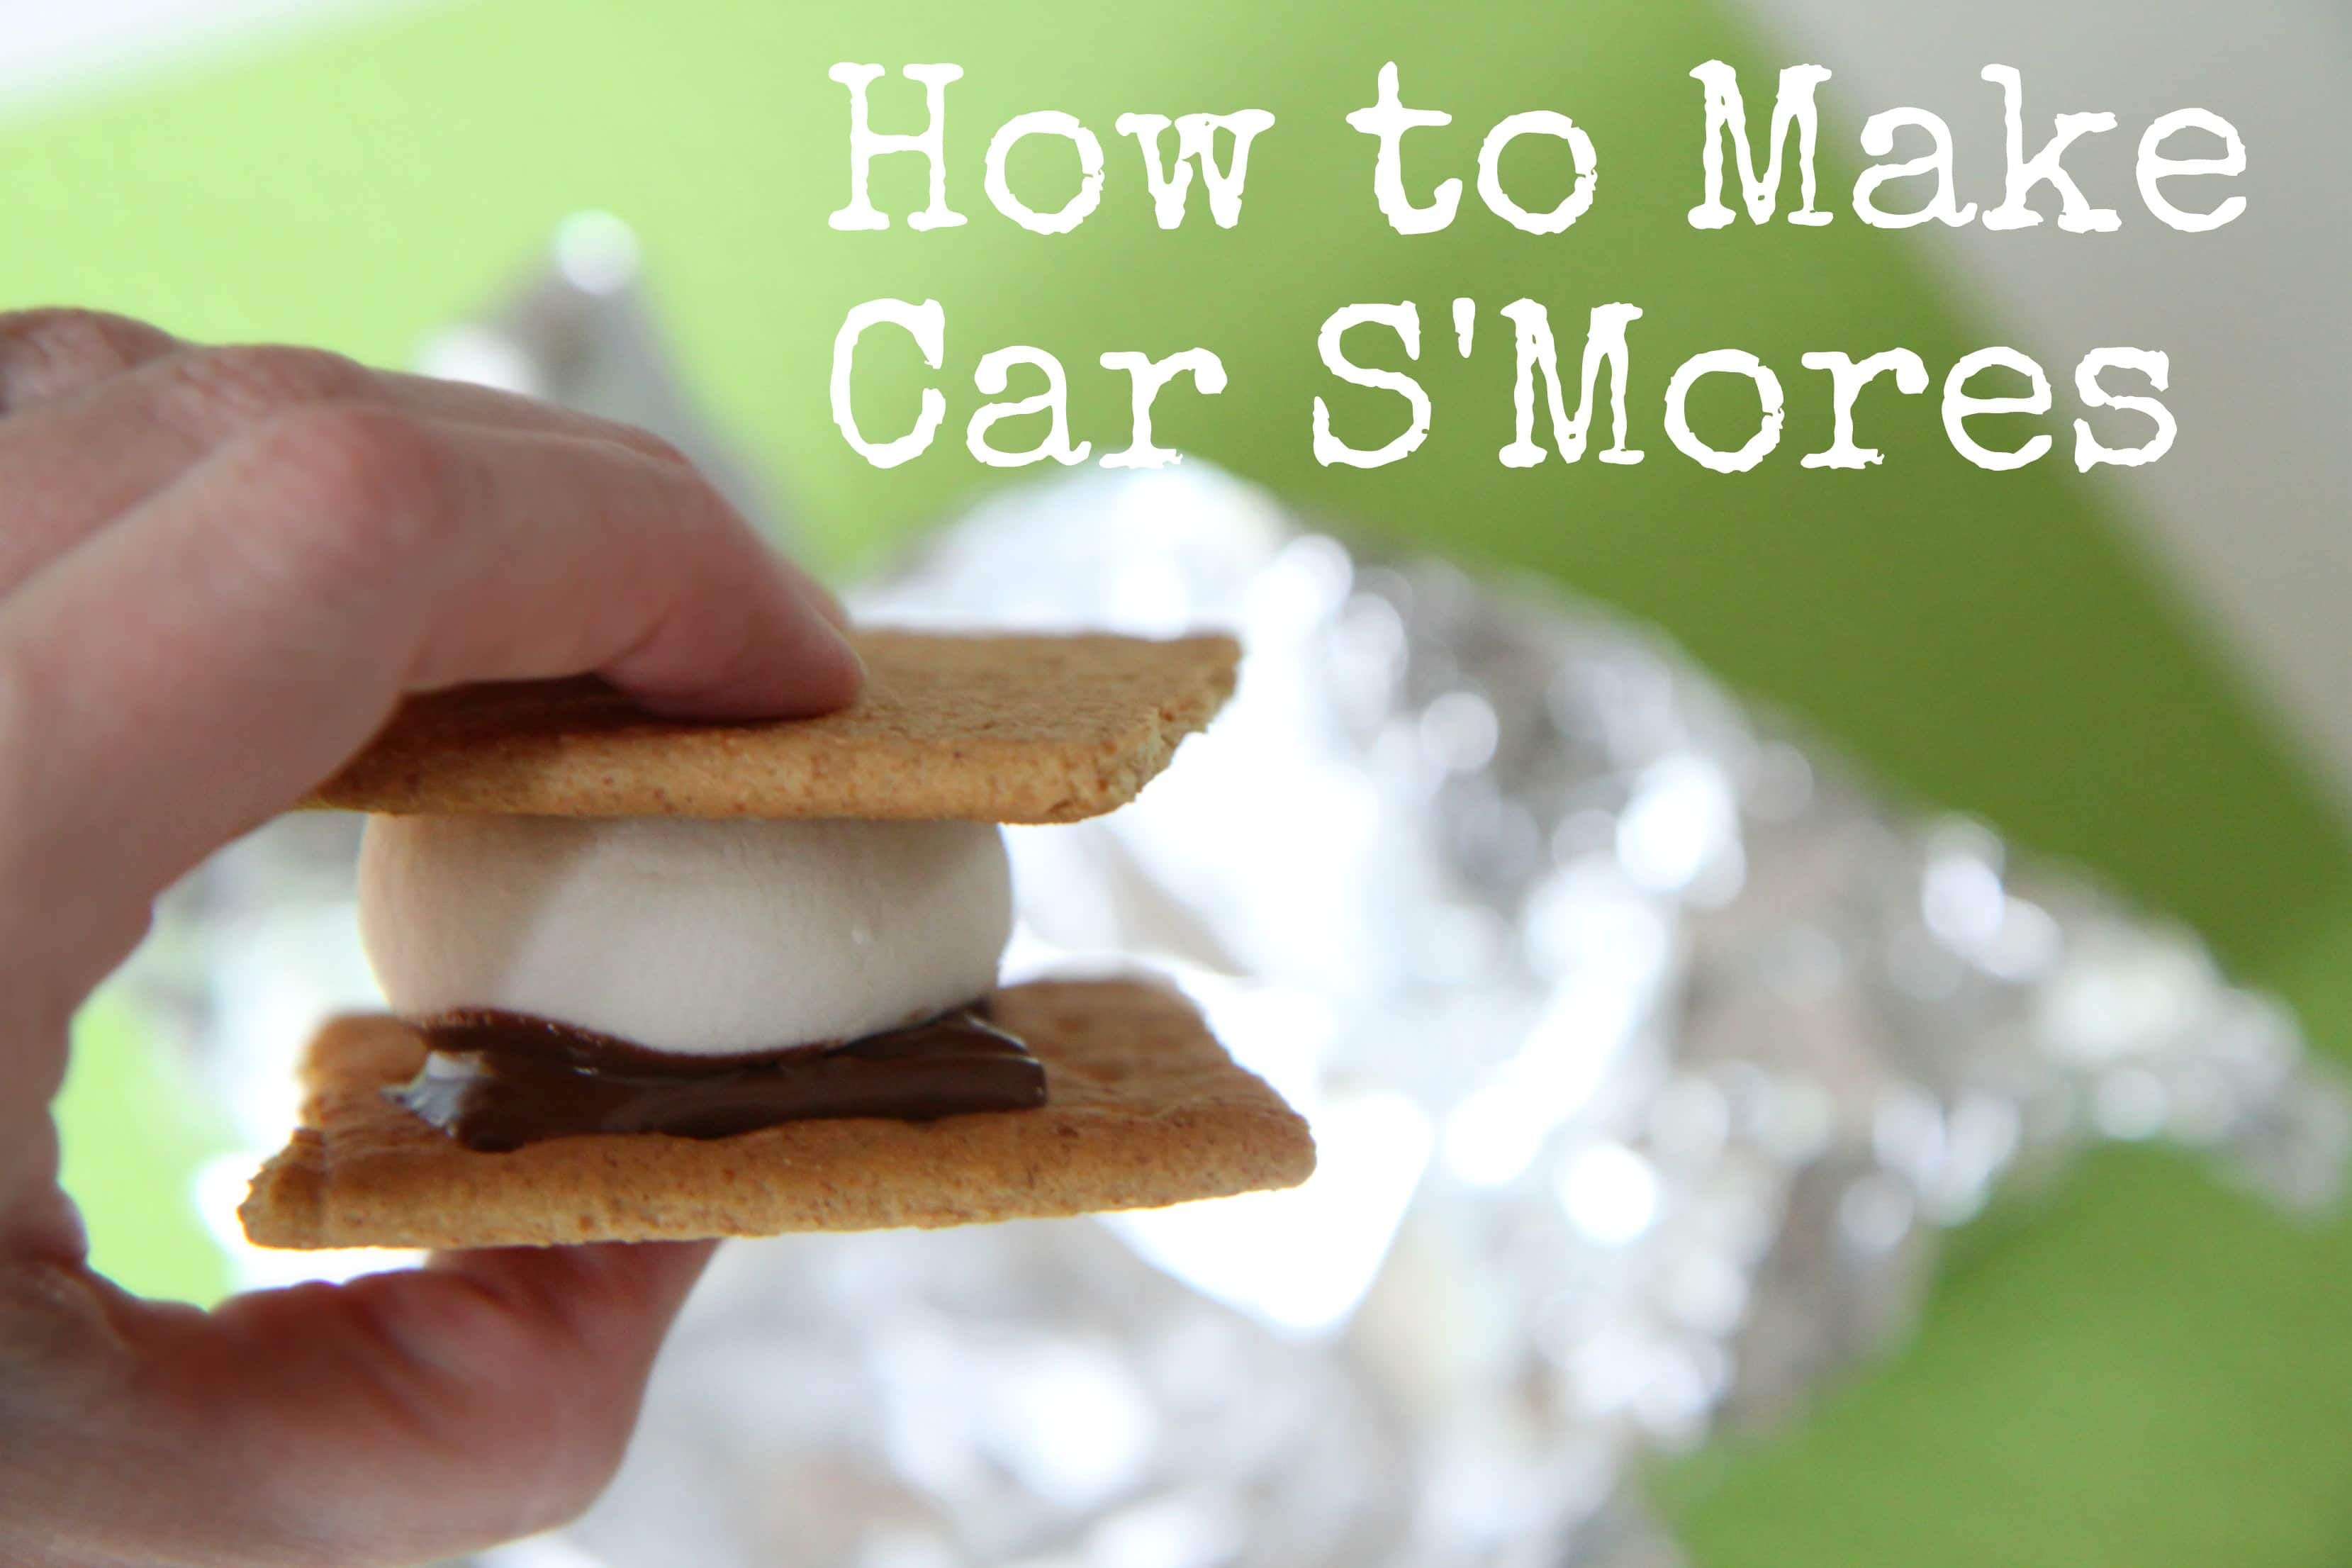 How to Make Car S'mores